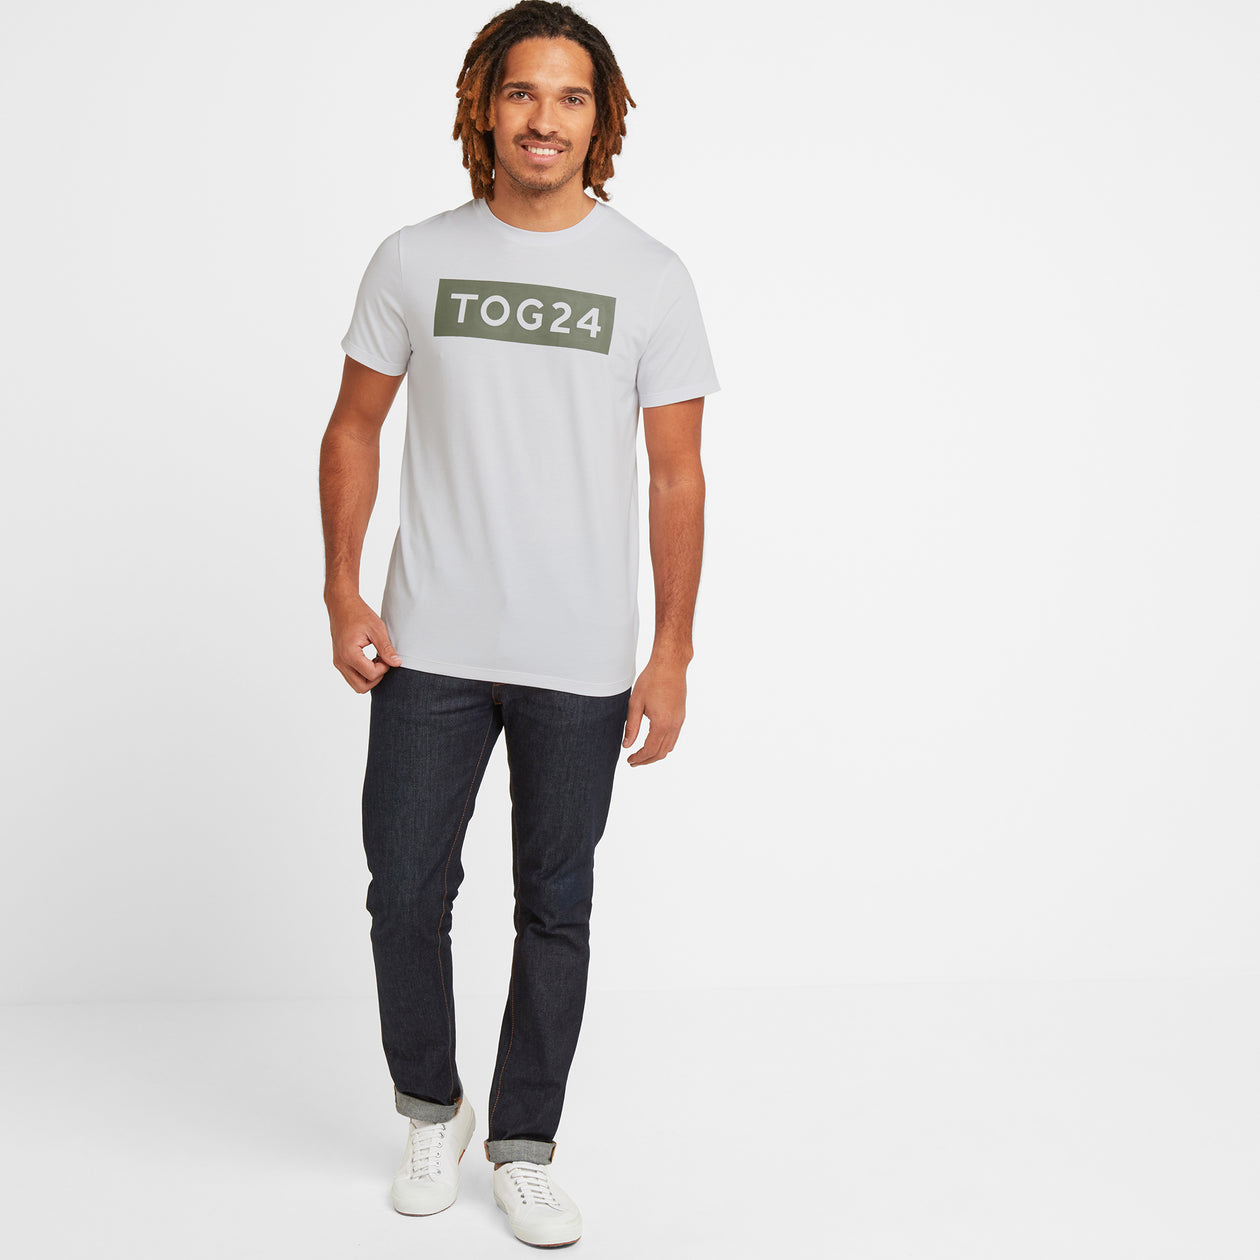 Churwell Mens Tech T-Shirt - Optic White image 4